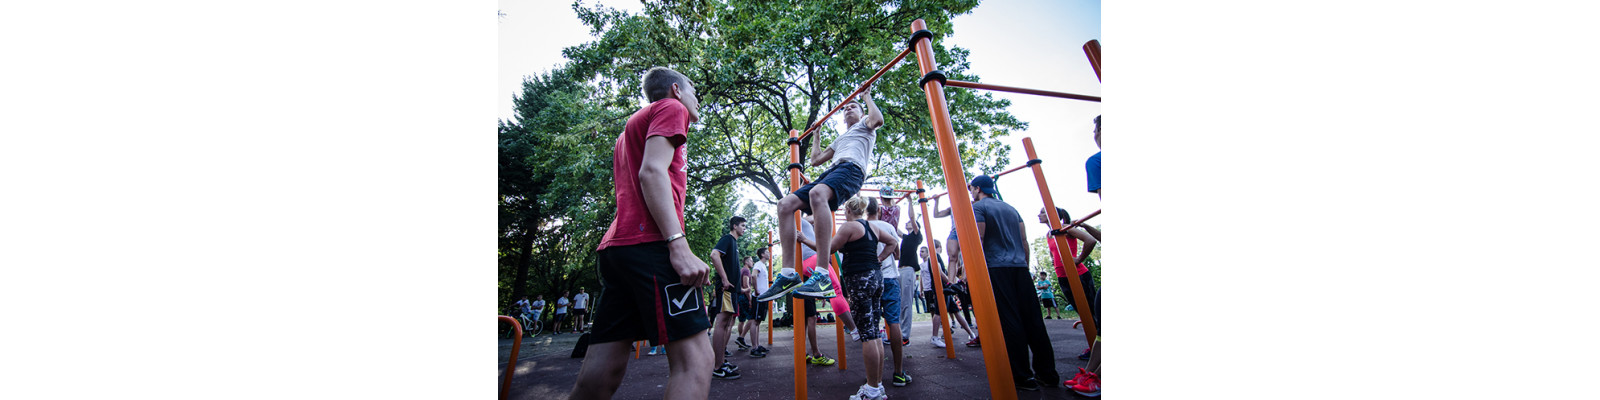 HBH - Street Workout